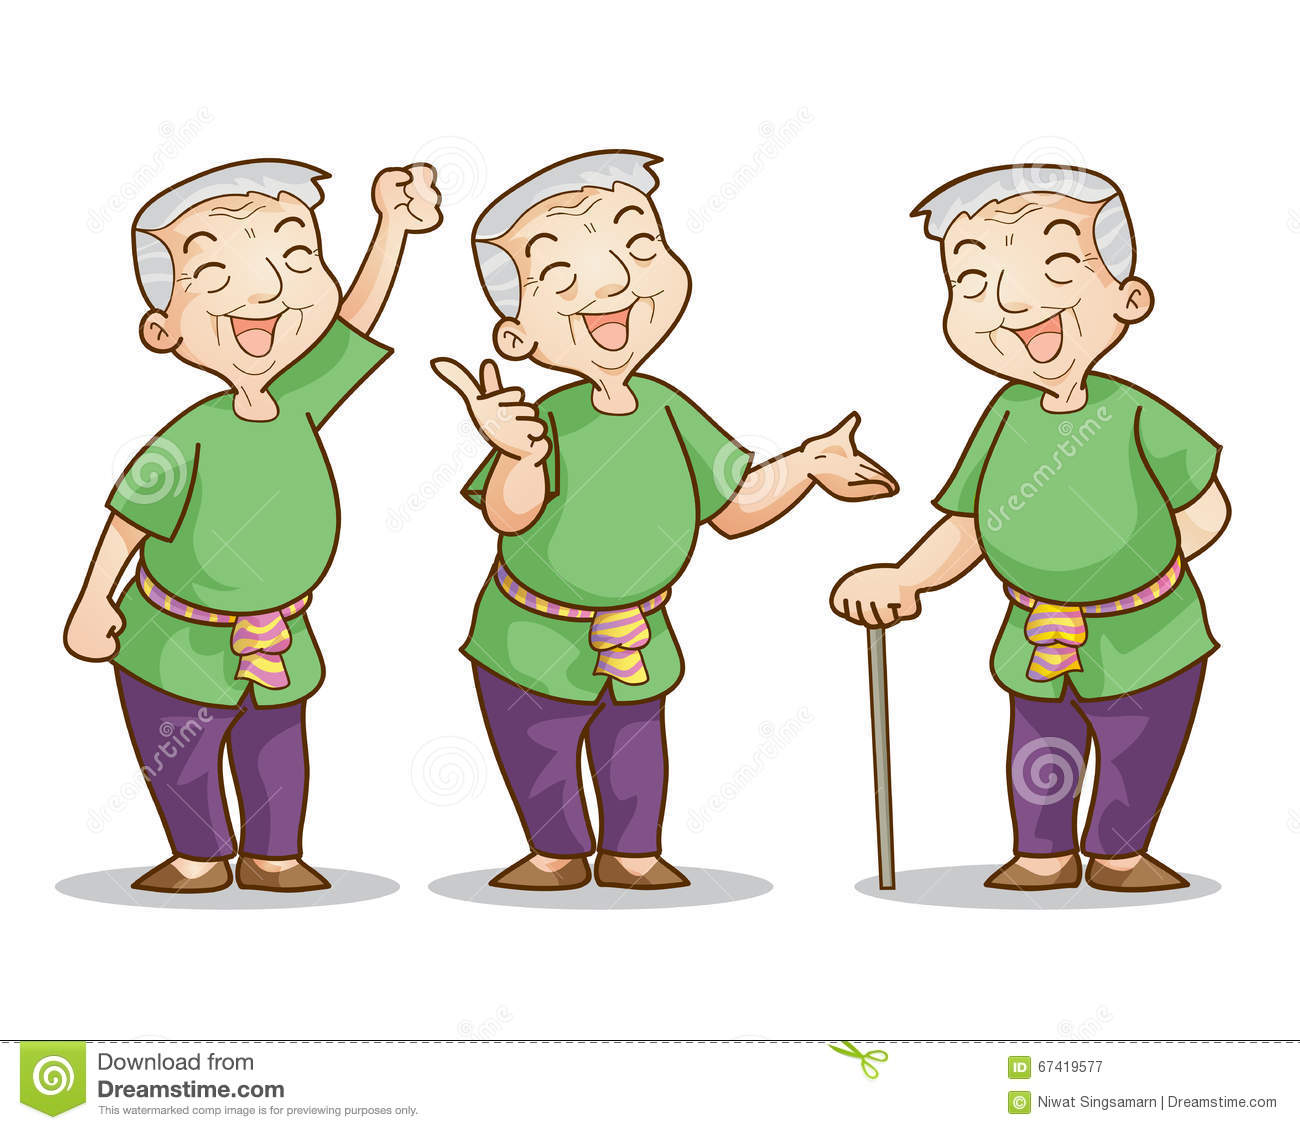 Cartoon Characters Old Man : Image gallery old man cartoon characters